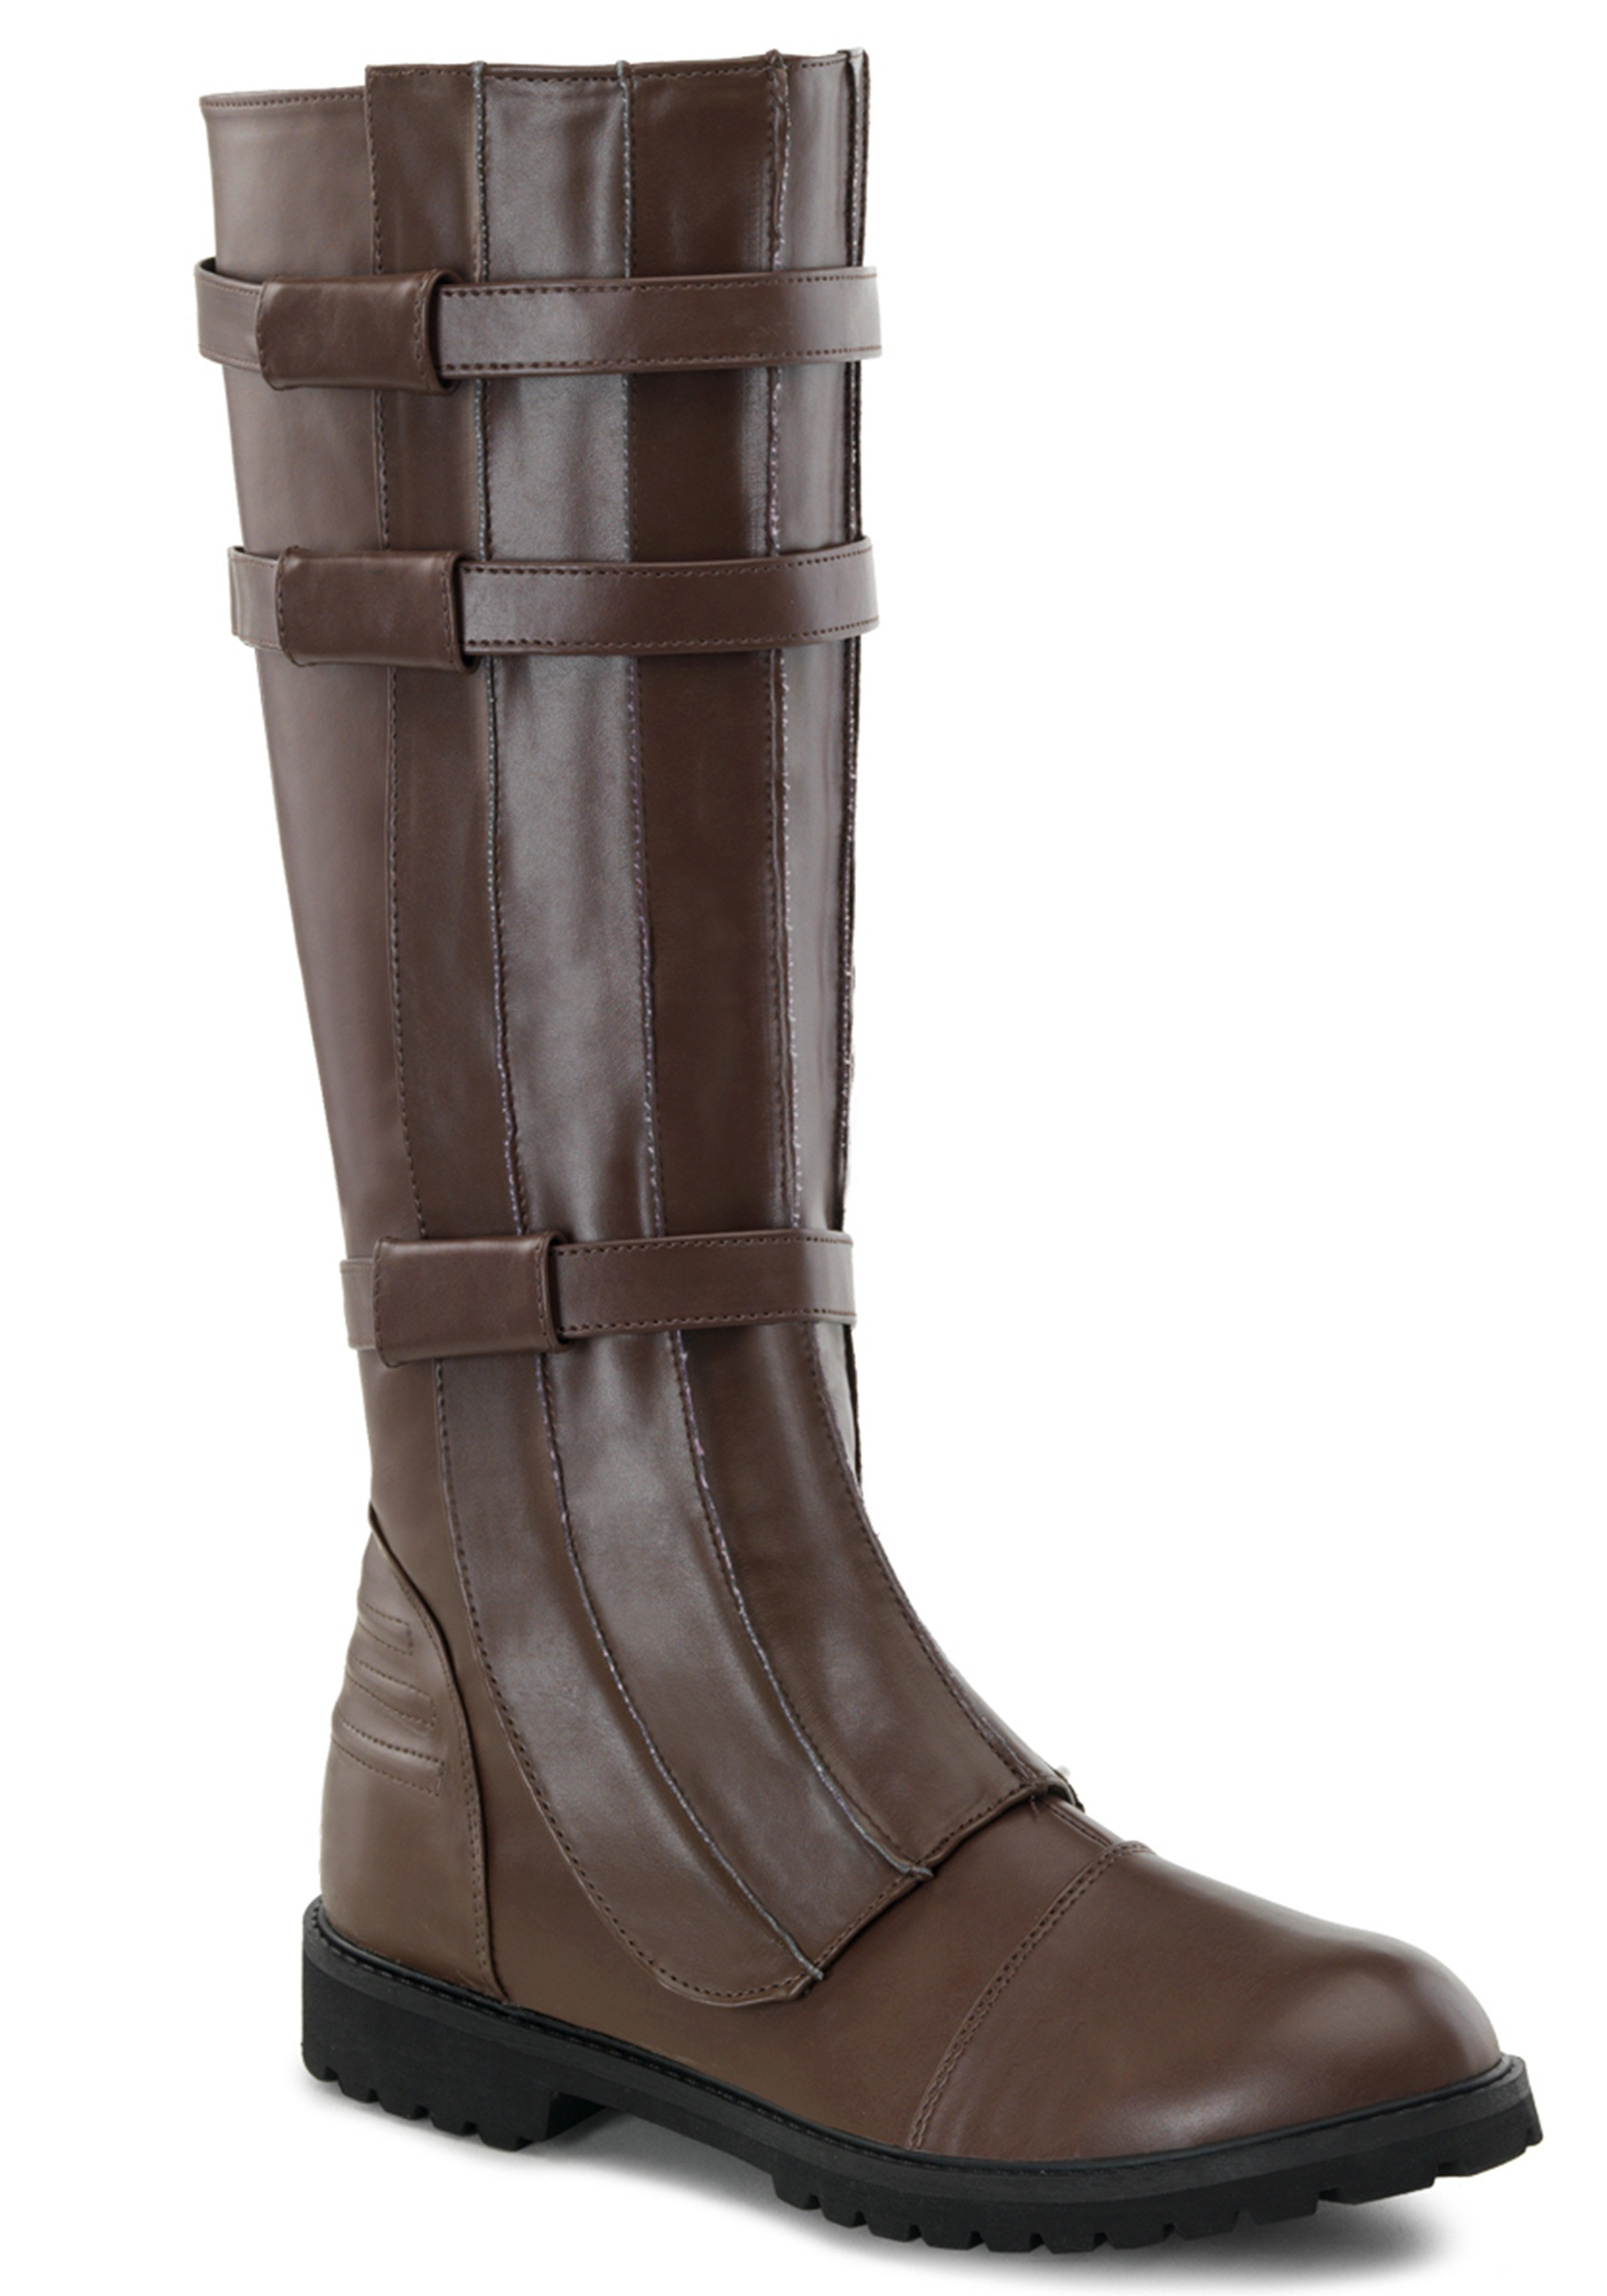 Boots Adult Costume 45